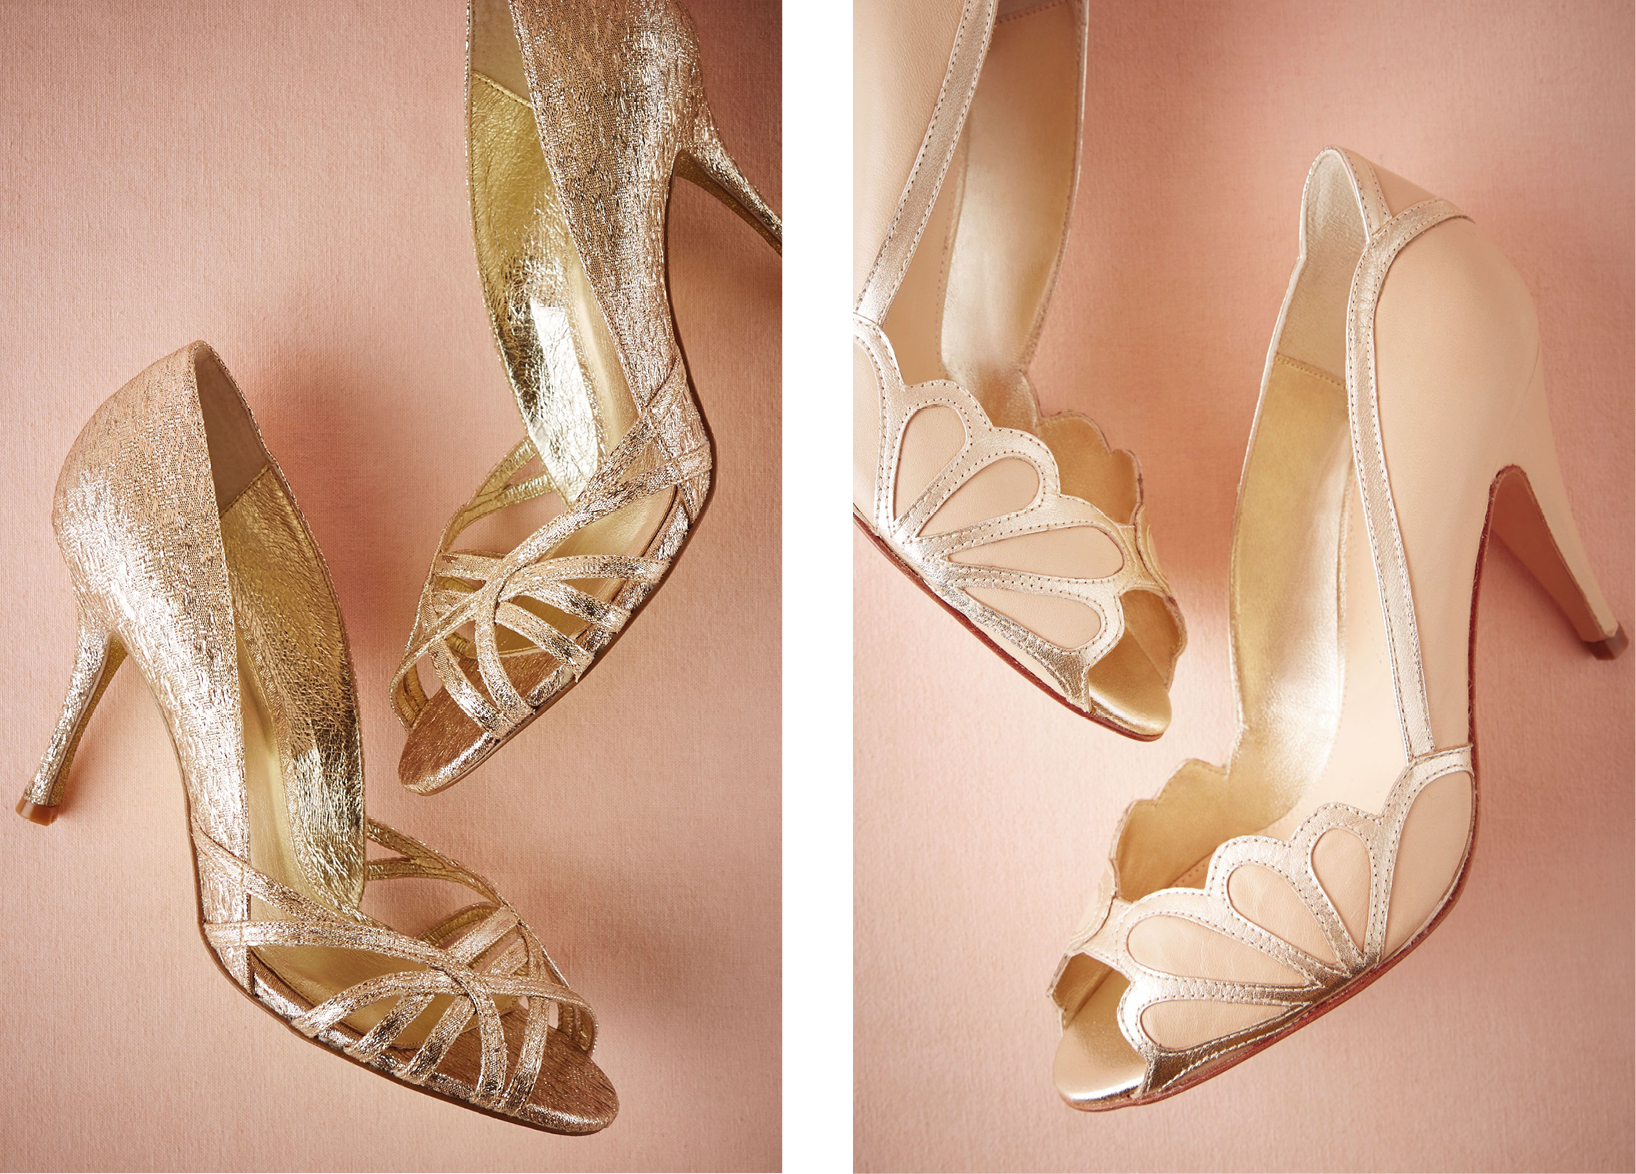 Chaussures  Starcrossed Peep toes 110.51€ et  Isabella scalloped heel 257,85€